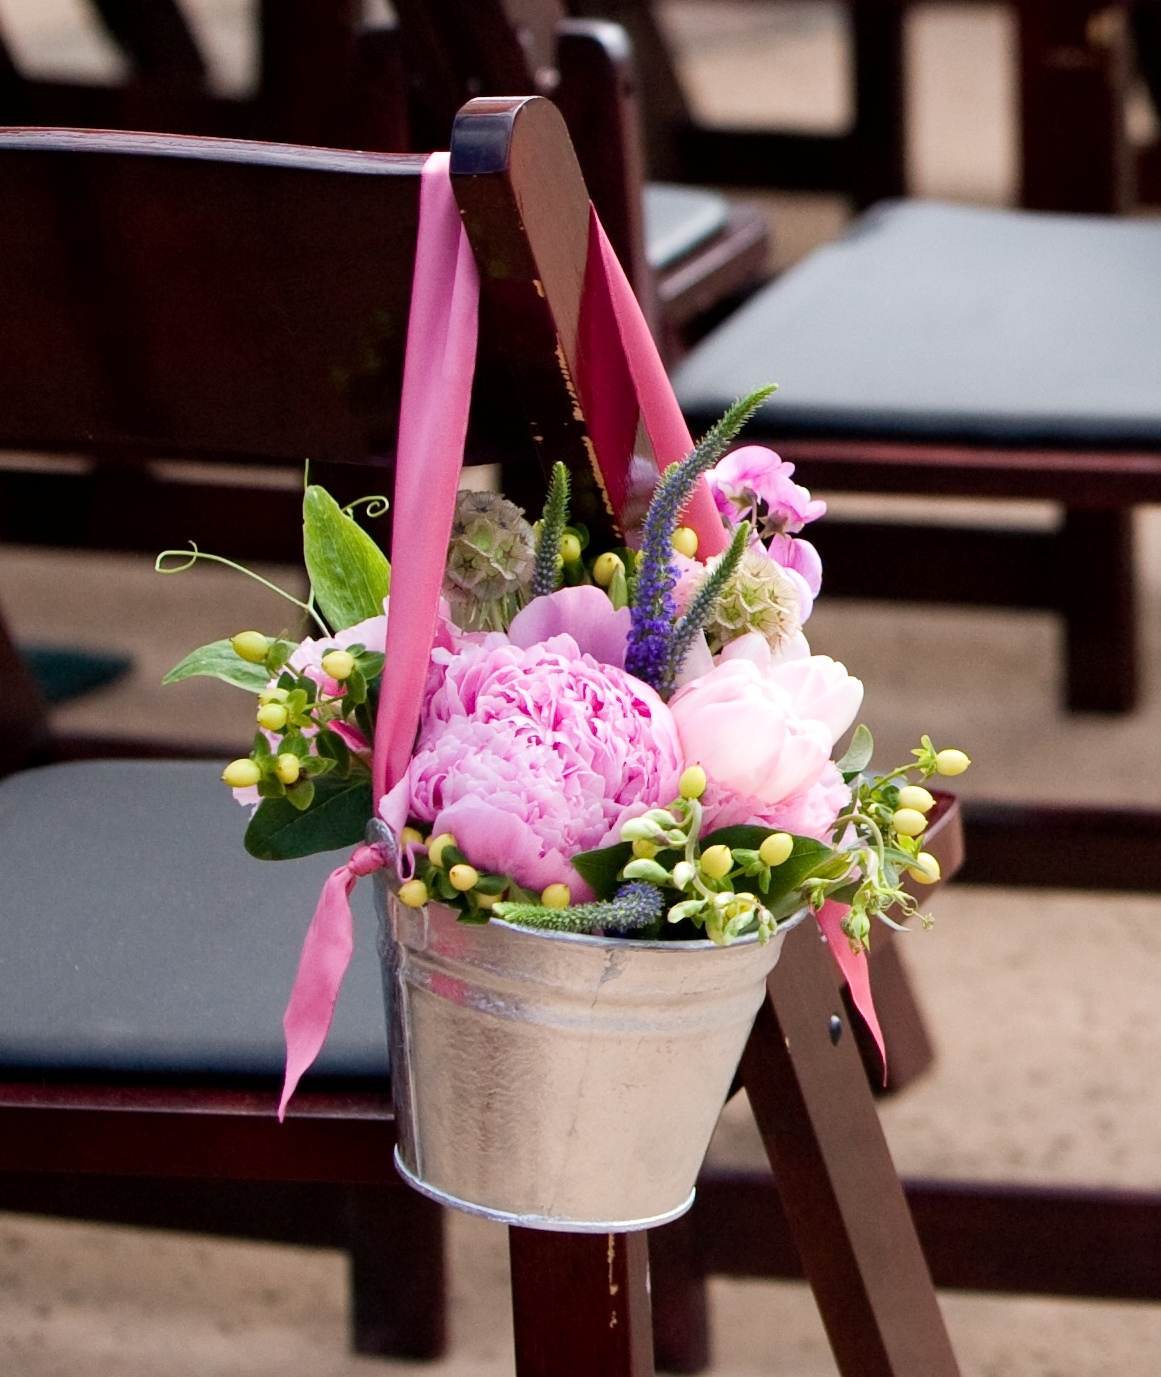 Wedding Aisle Flowers: Sweet Colorful Chair Decor Of Peonies Tulips Sweet Peas